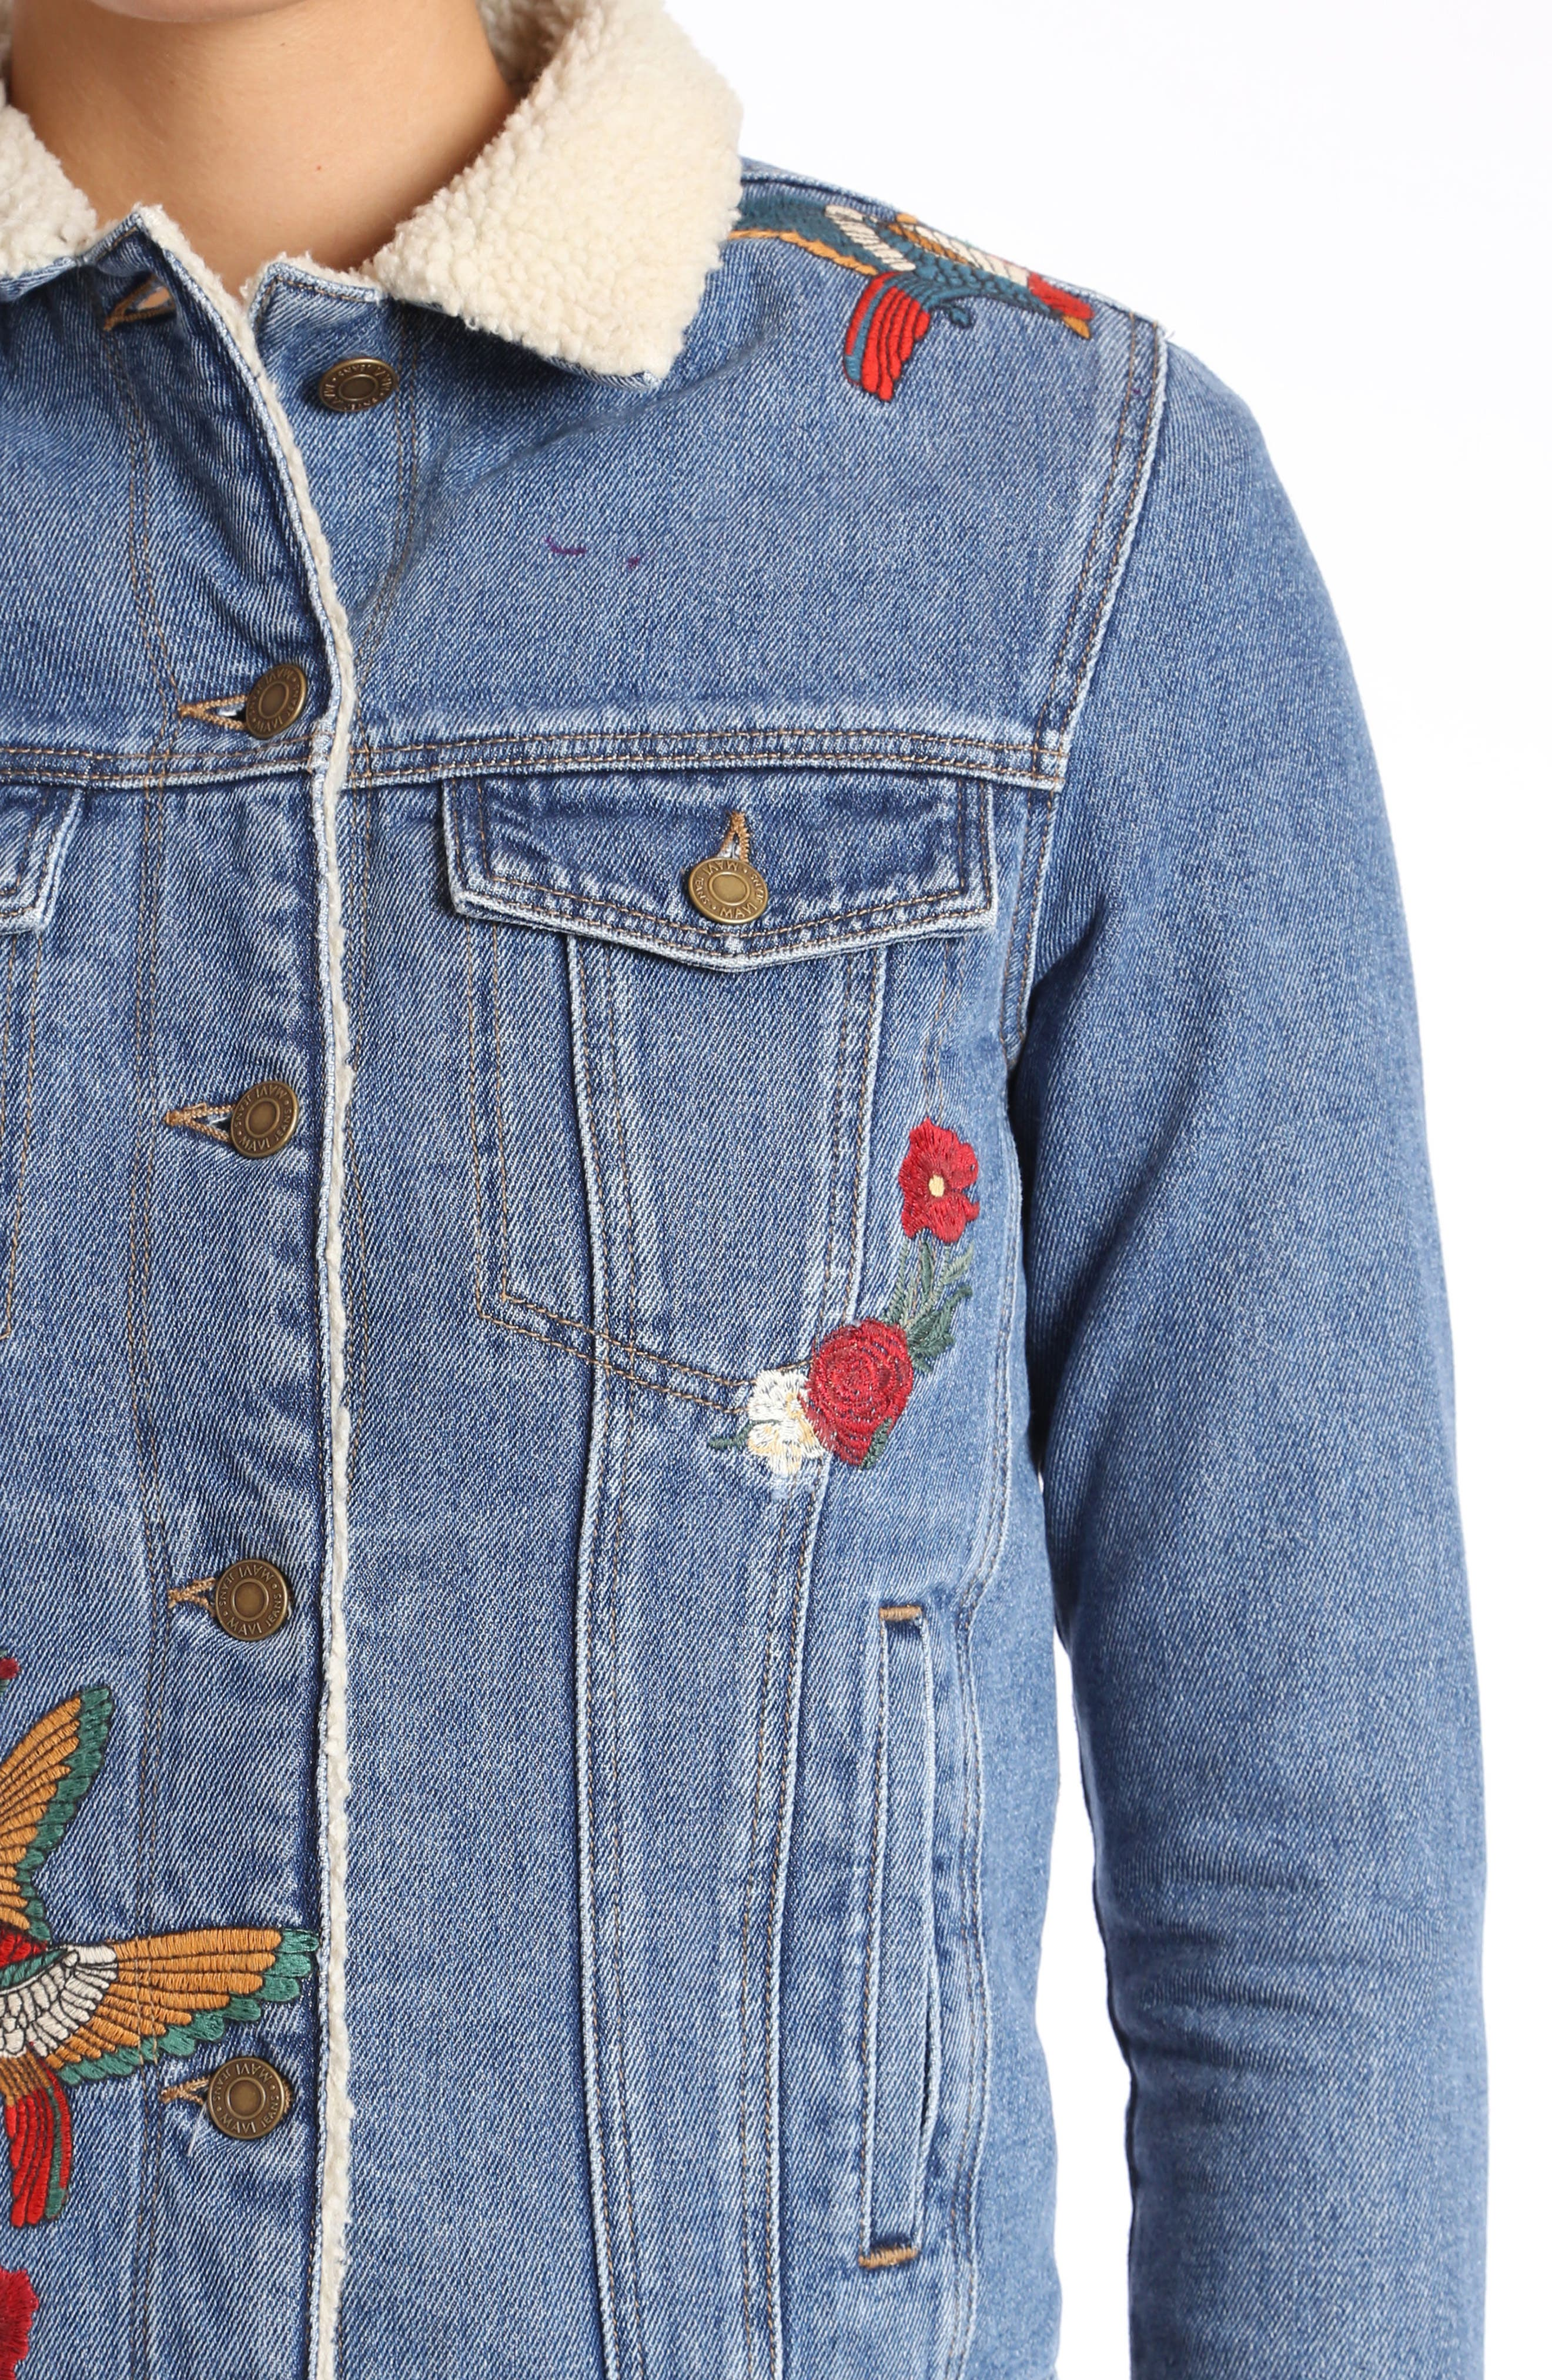 Katy Embroidered Denim Jacket,                             Alternate thumbnail 3, color,                             Mid Garden Embroidery